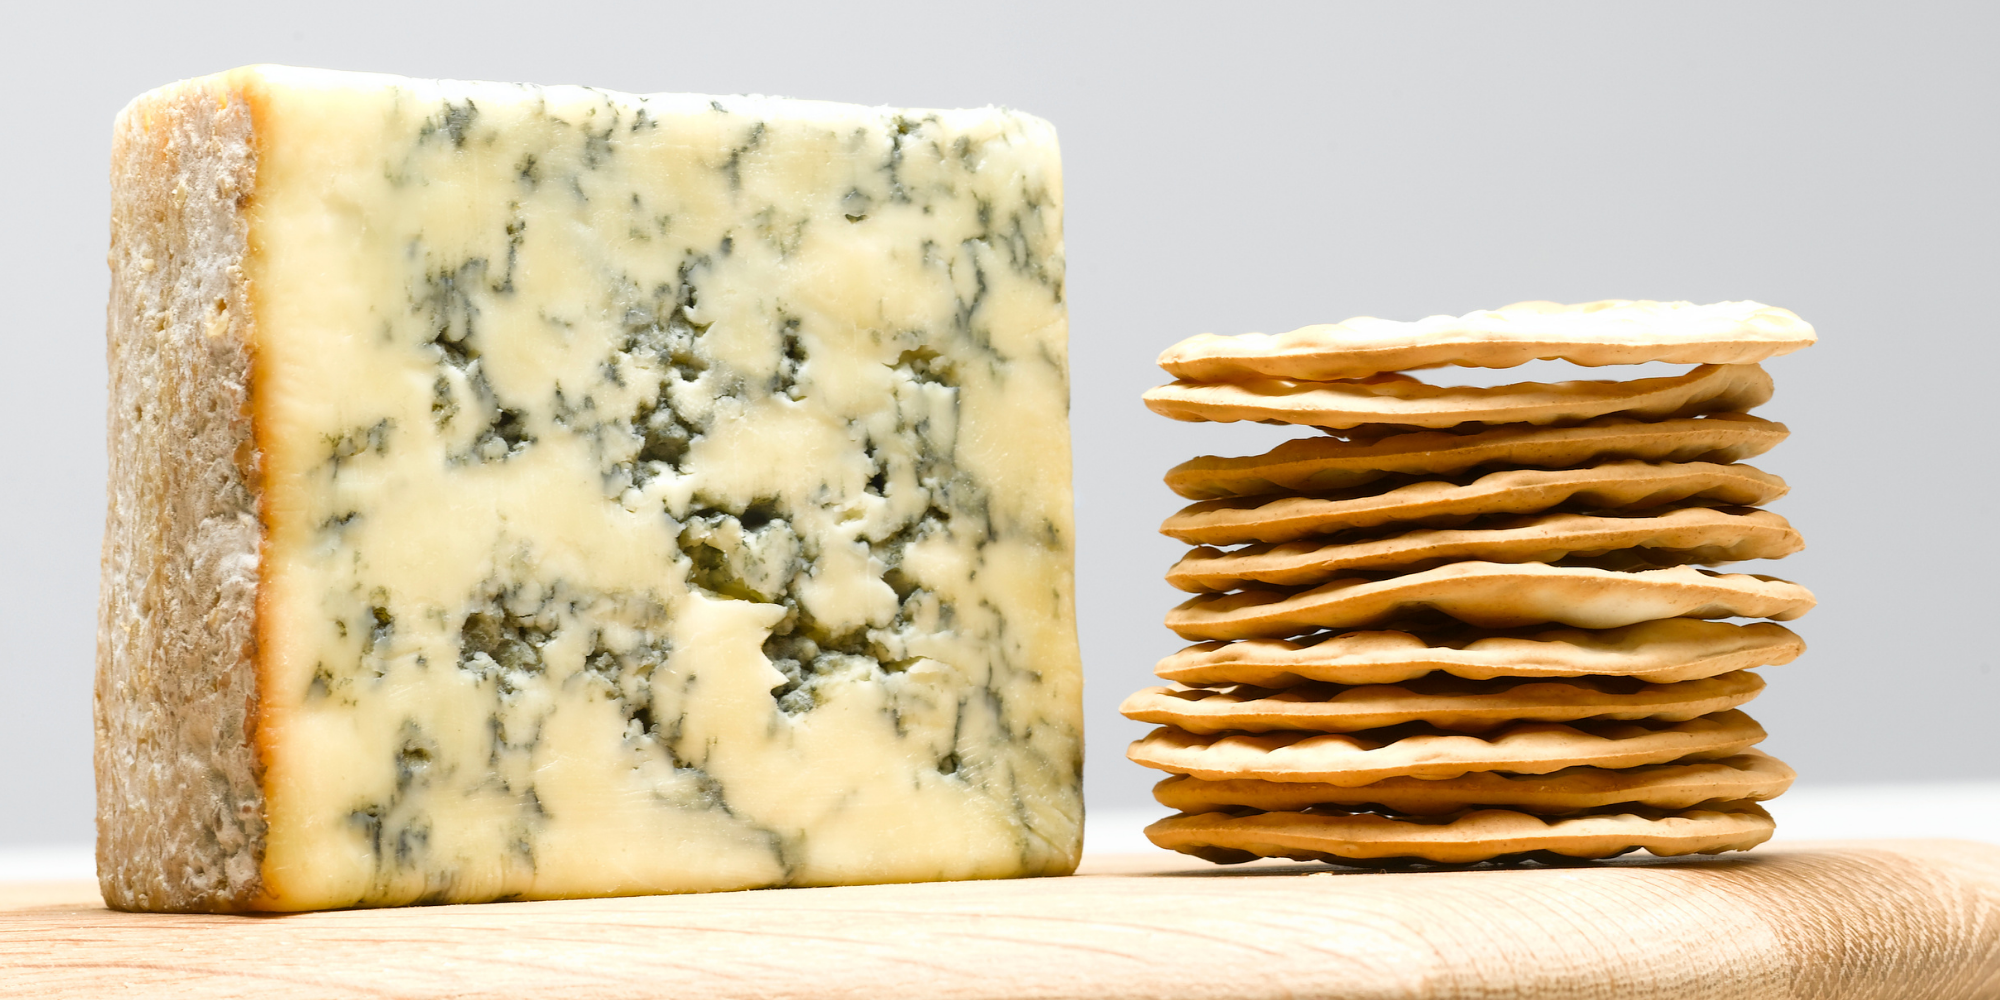 Stilton: How the UK's most famoust blue cheese is made